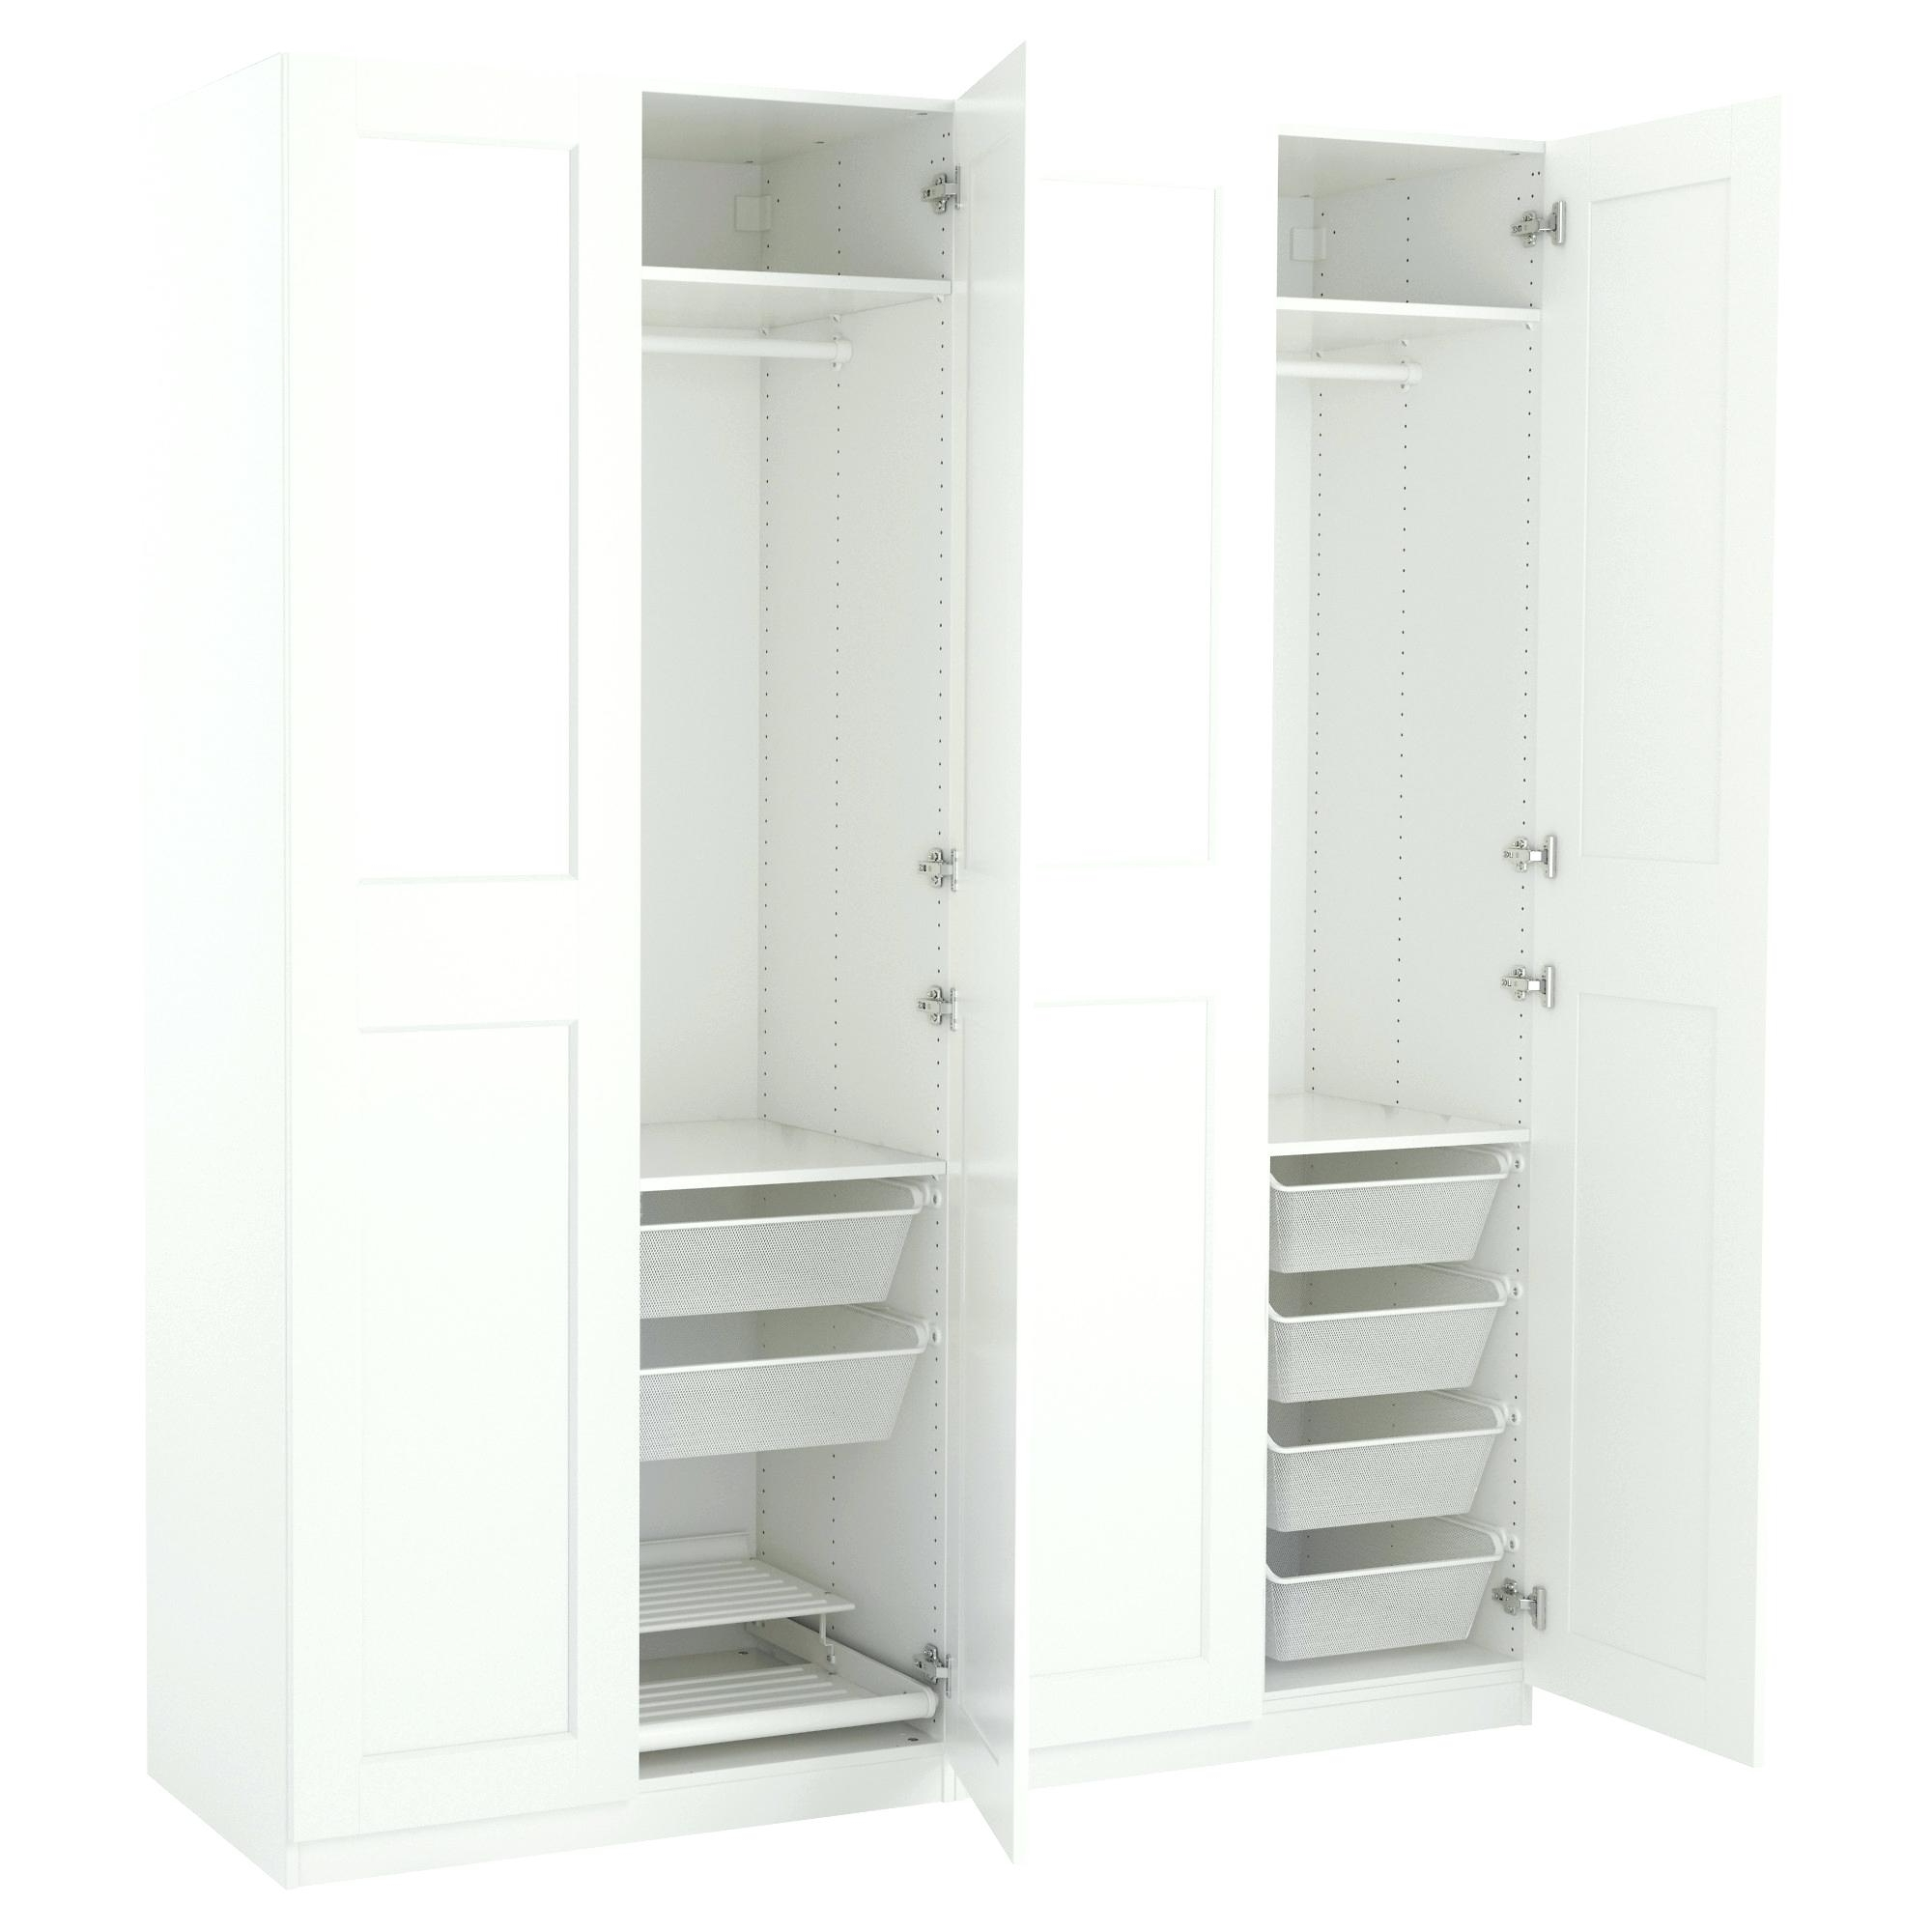 Famous Fitted Wardrobe Depth With Closet ~ 4 Door Wardrobe Closet Fitted Wardrobe With Shaker Mirror (View 4 of 15)